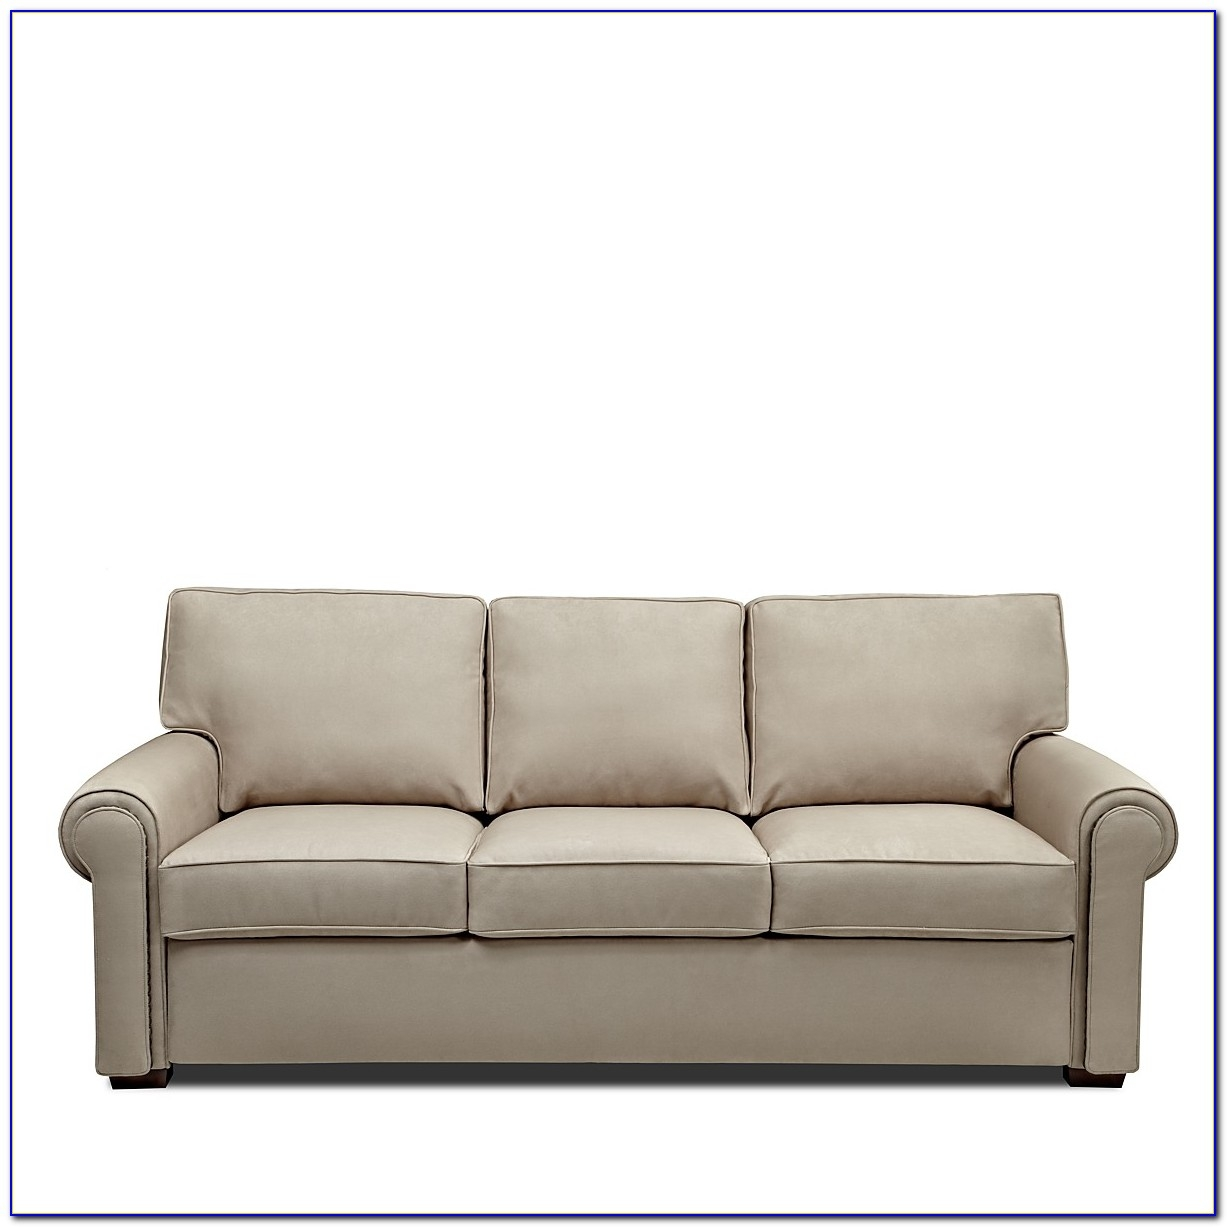 sectional sofas toronto craigslist how do i stop my dog jumping up on the sofa sleeper